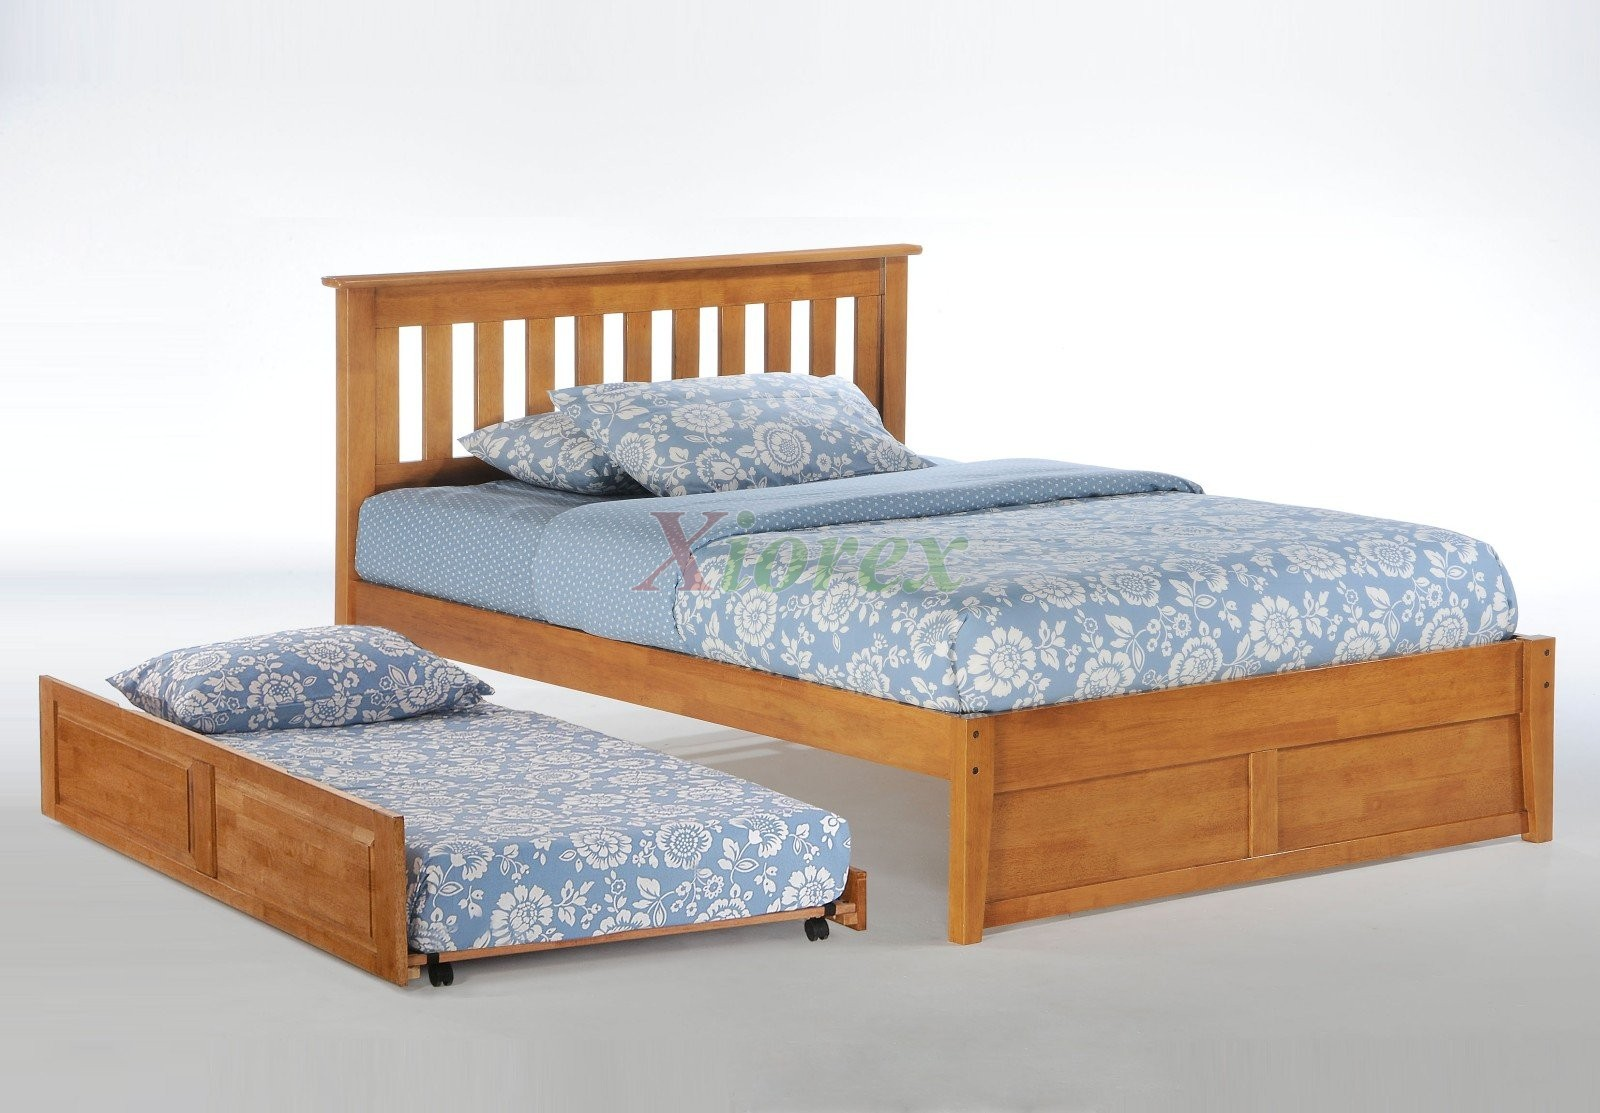 night and day rosemary bed platform bed w slat headboard xiorex beds. Black Bedroom Furniture Sets. Home Design Ideas